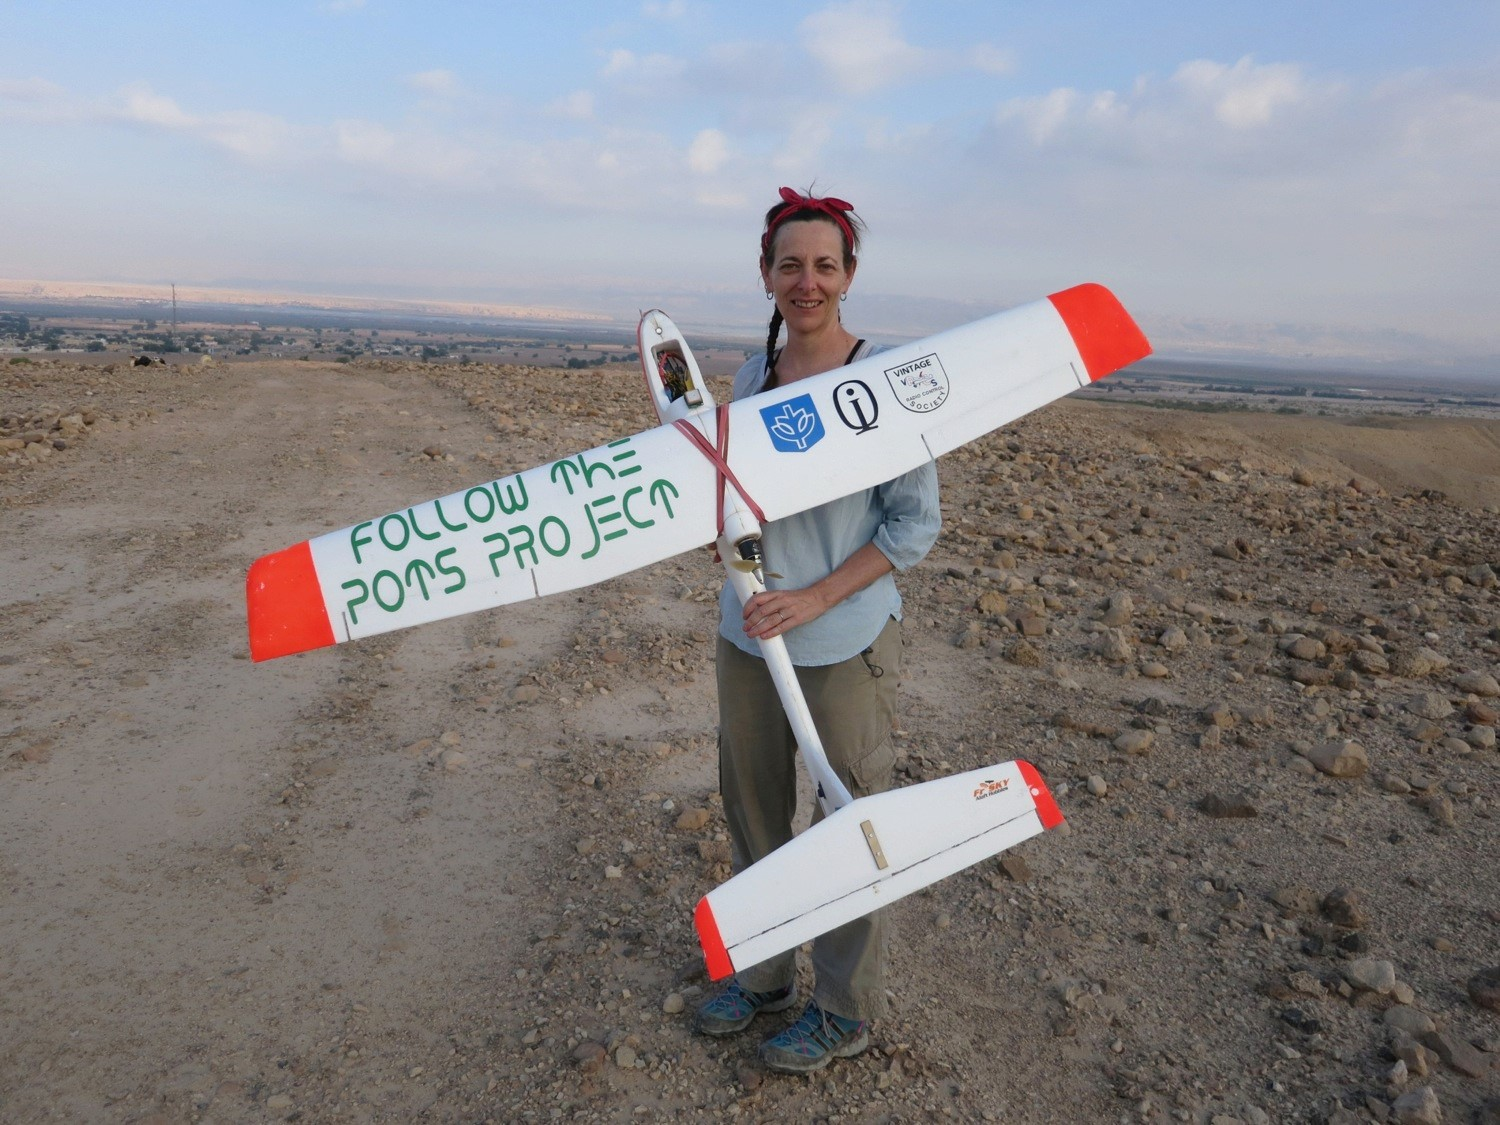 Morag M. Kersel with fixed wing drone